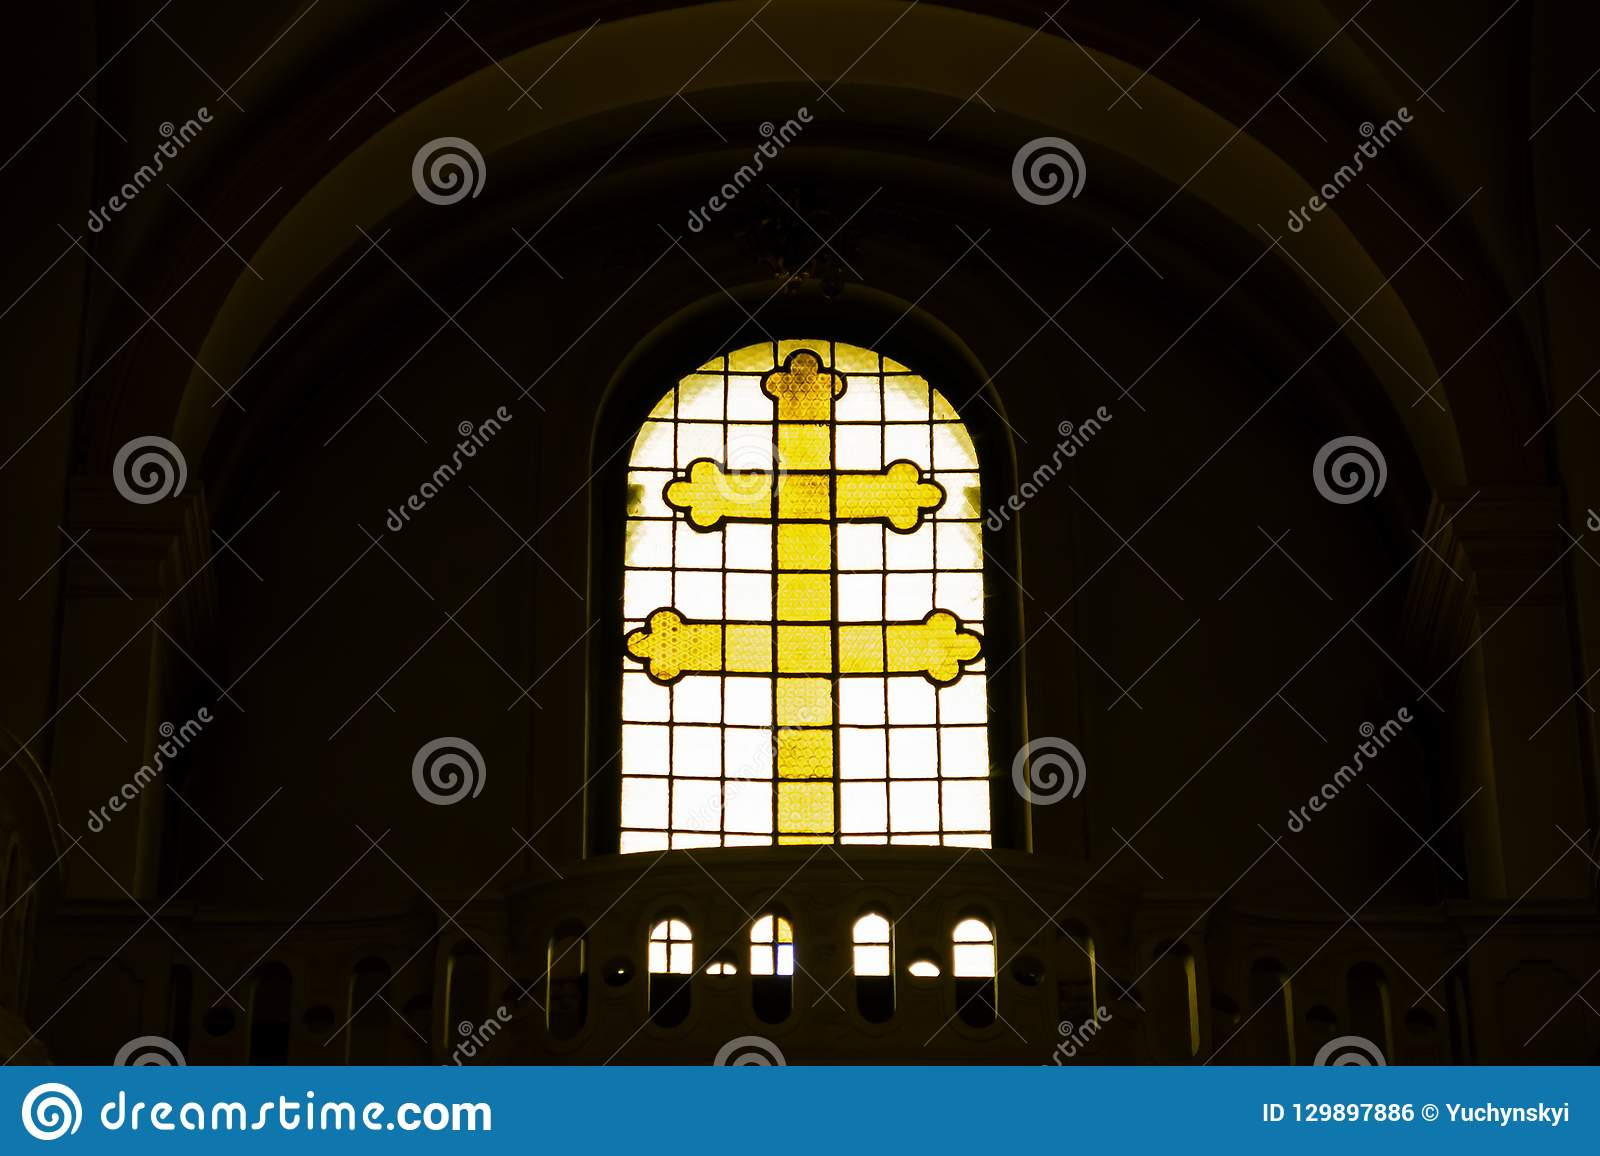 Yellow Christian cross made of glass in the window. Symbols of faith. Crucifixion of Jesus